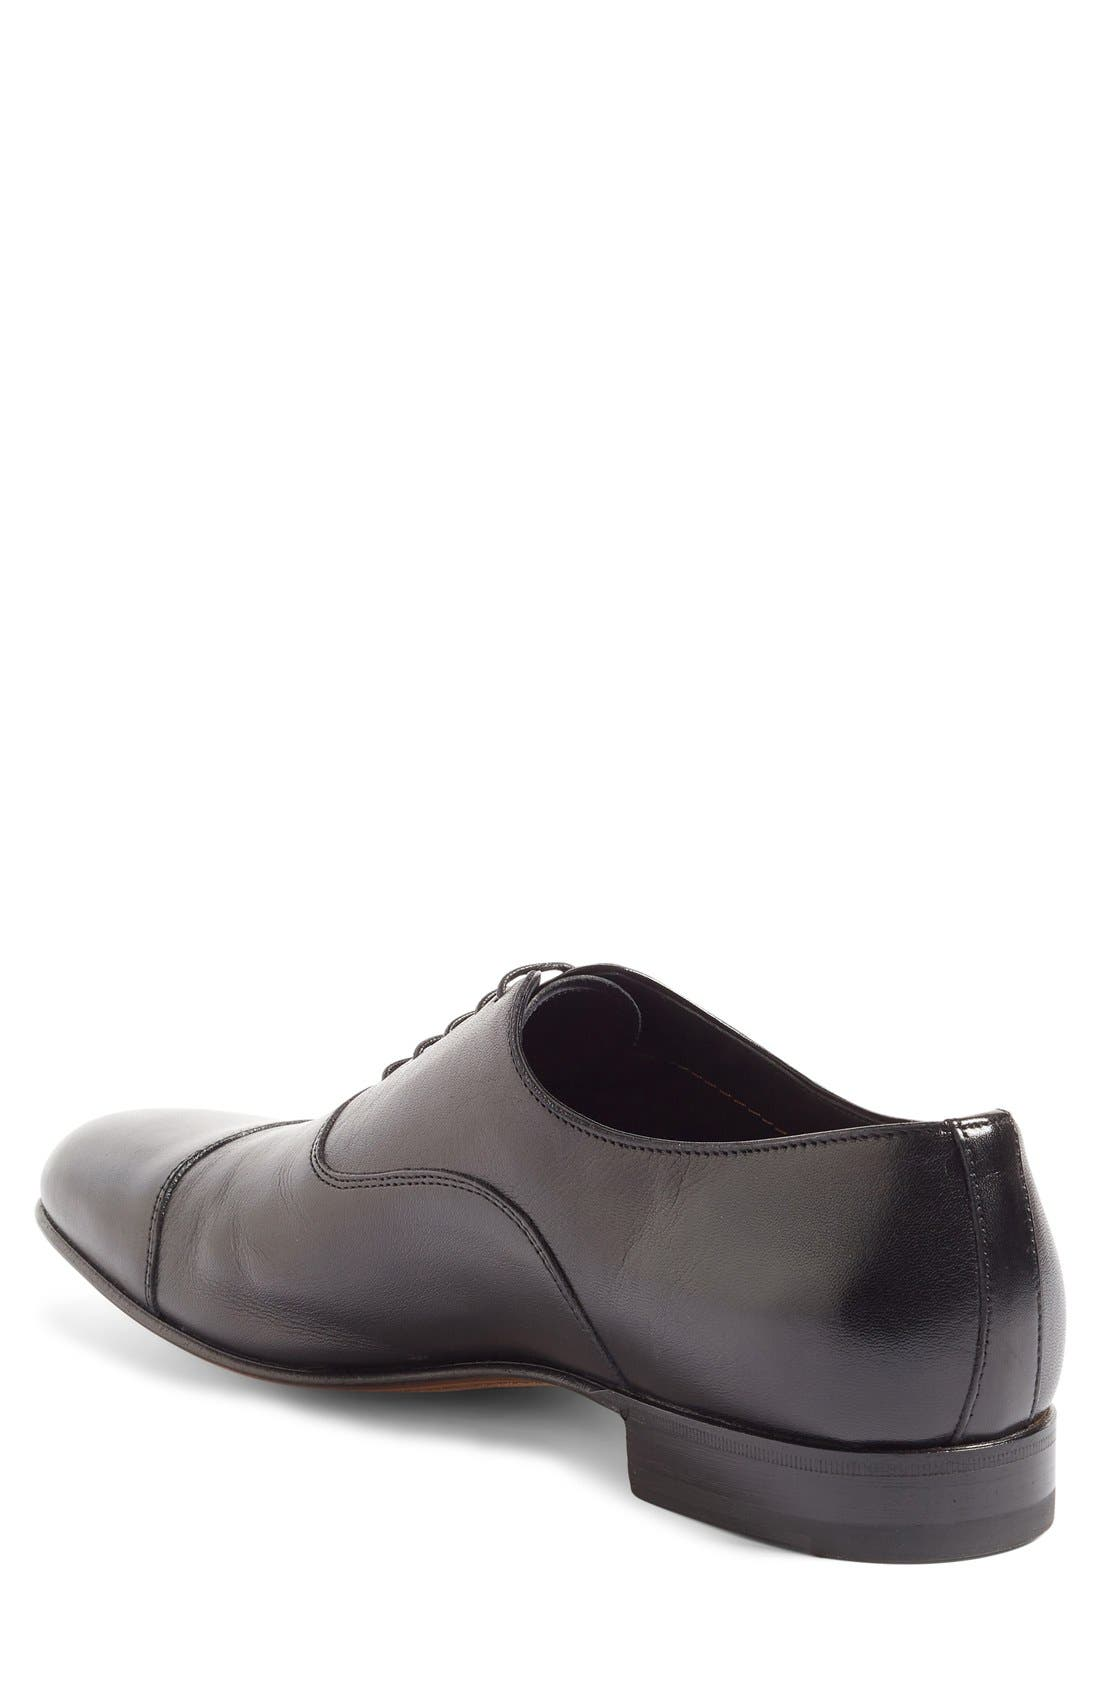 SANTONI, Darian Cap Toe Oxford, Alternate thumbnail 4, color, BLACK LEATHER